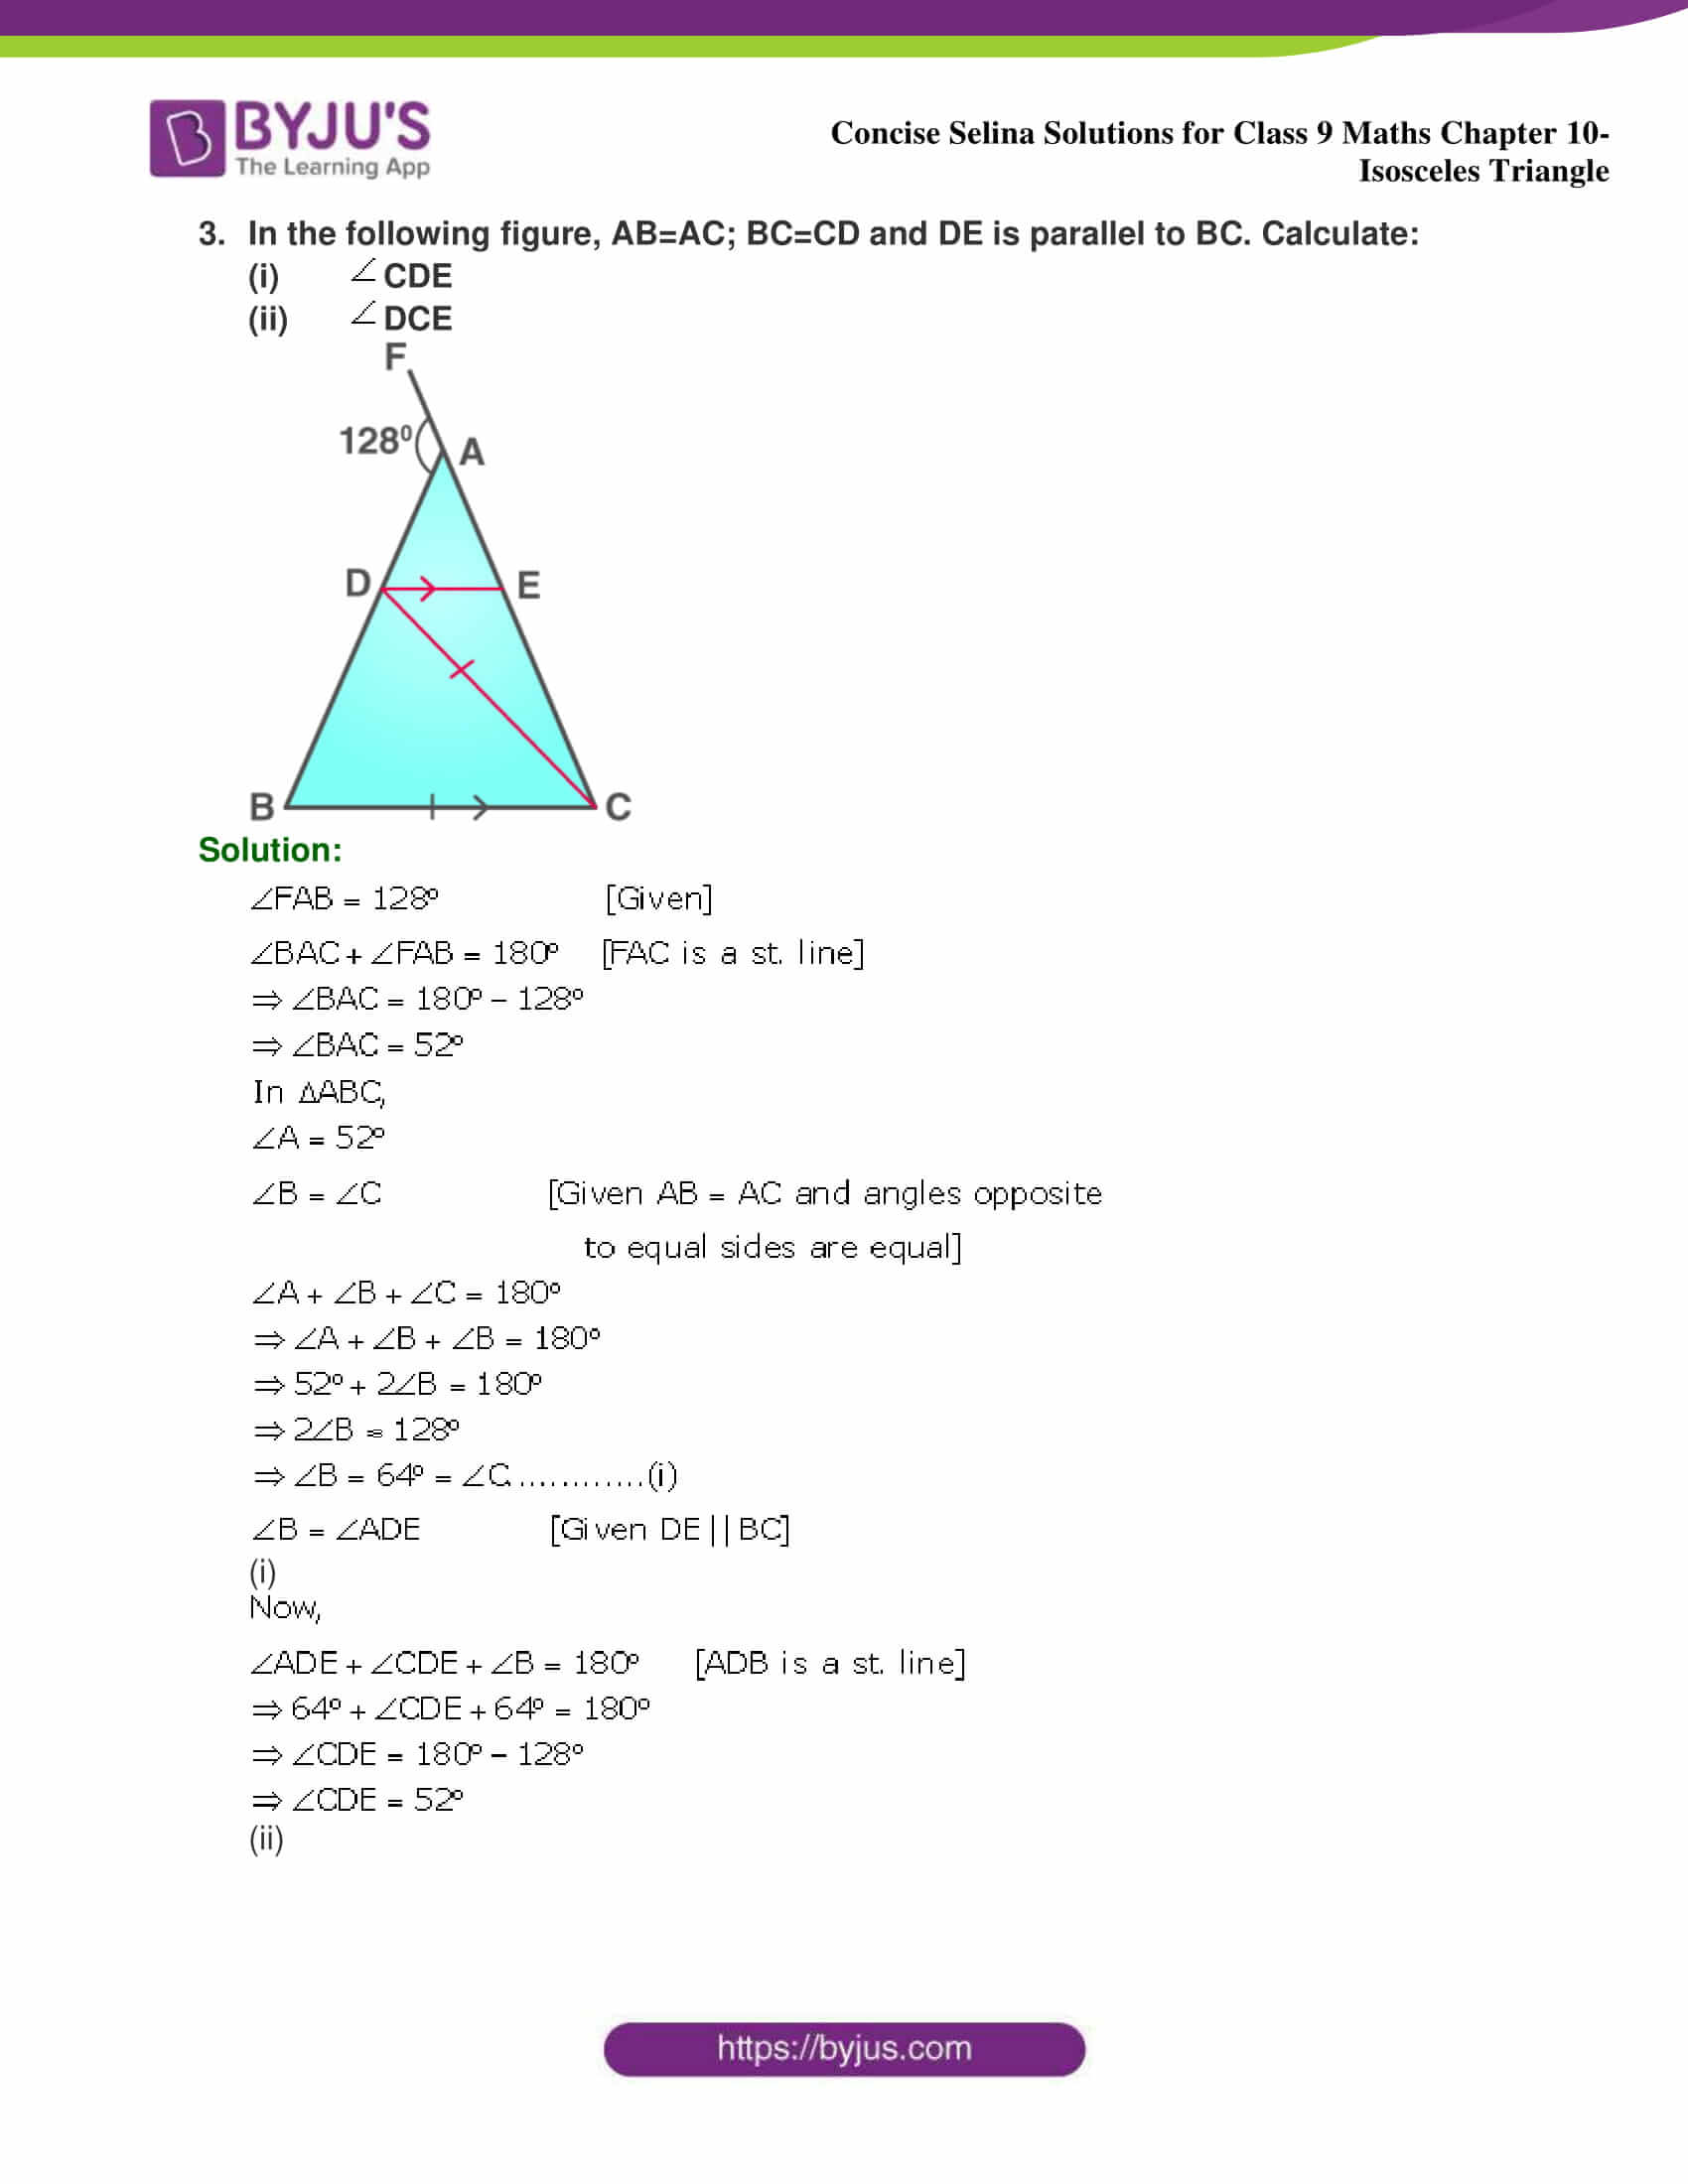 selina Solutions for Class 9 Maths Chapter 10 part 03